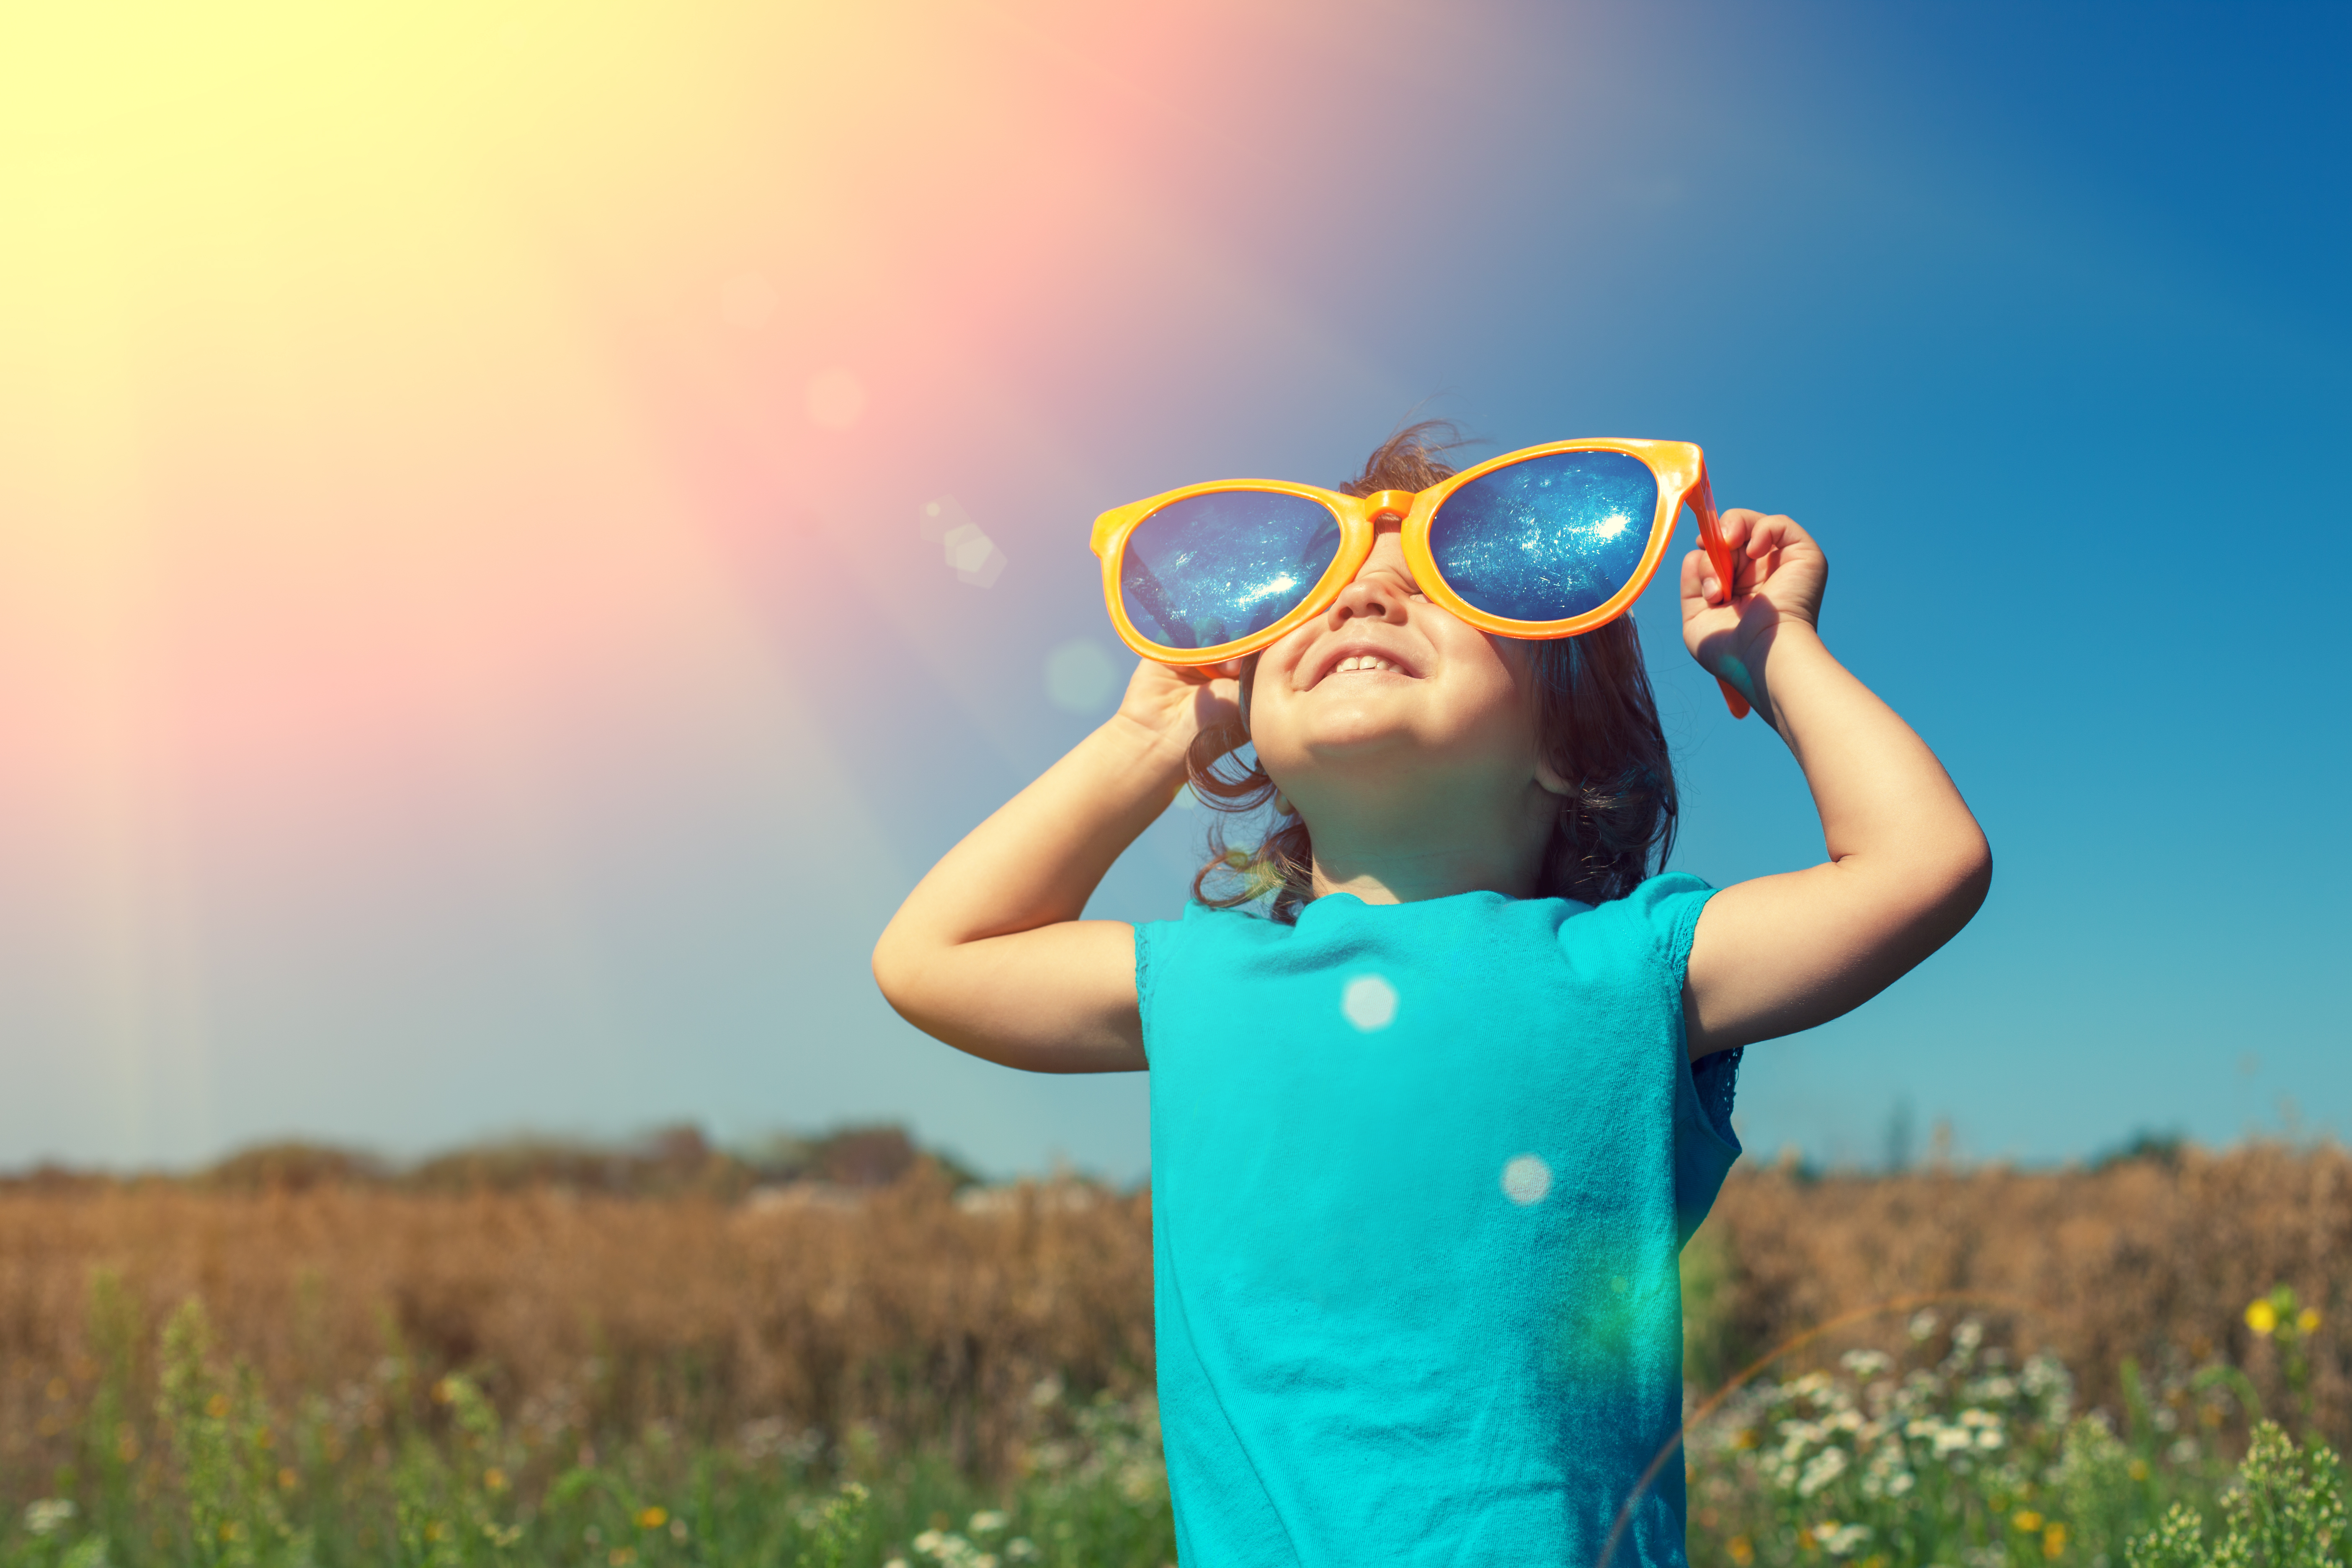 There are benefits of sunshine that could help your mental health during COVID-19